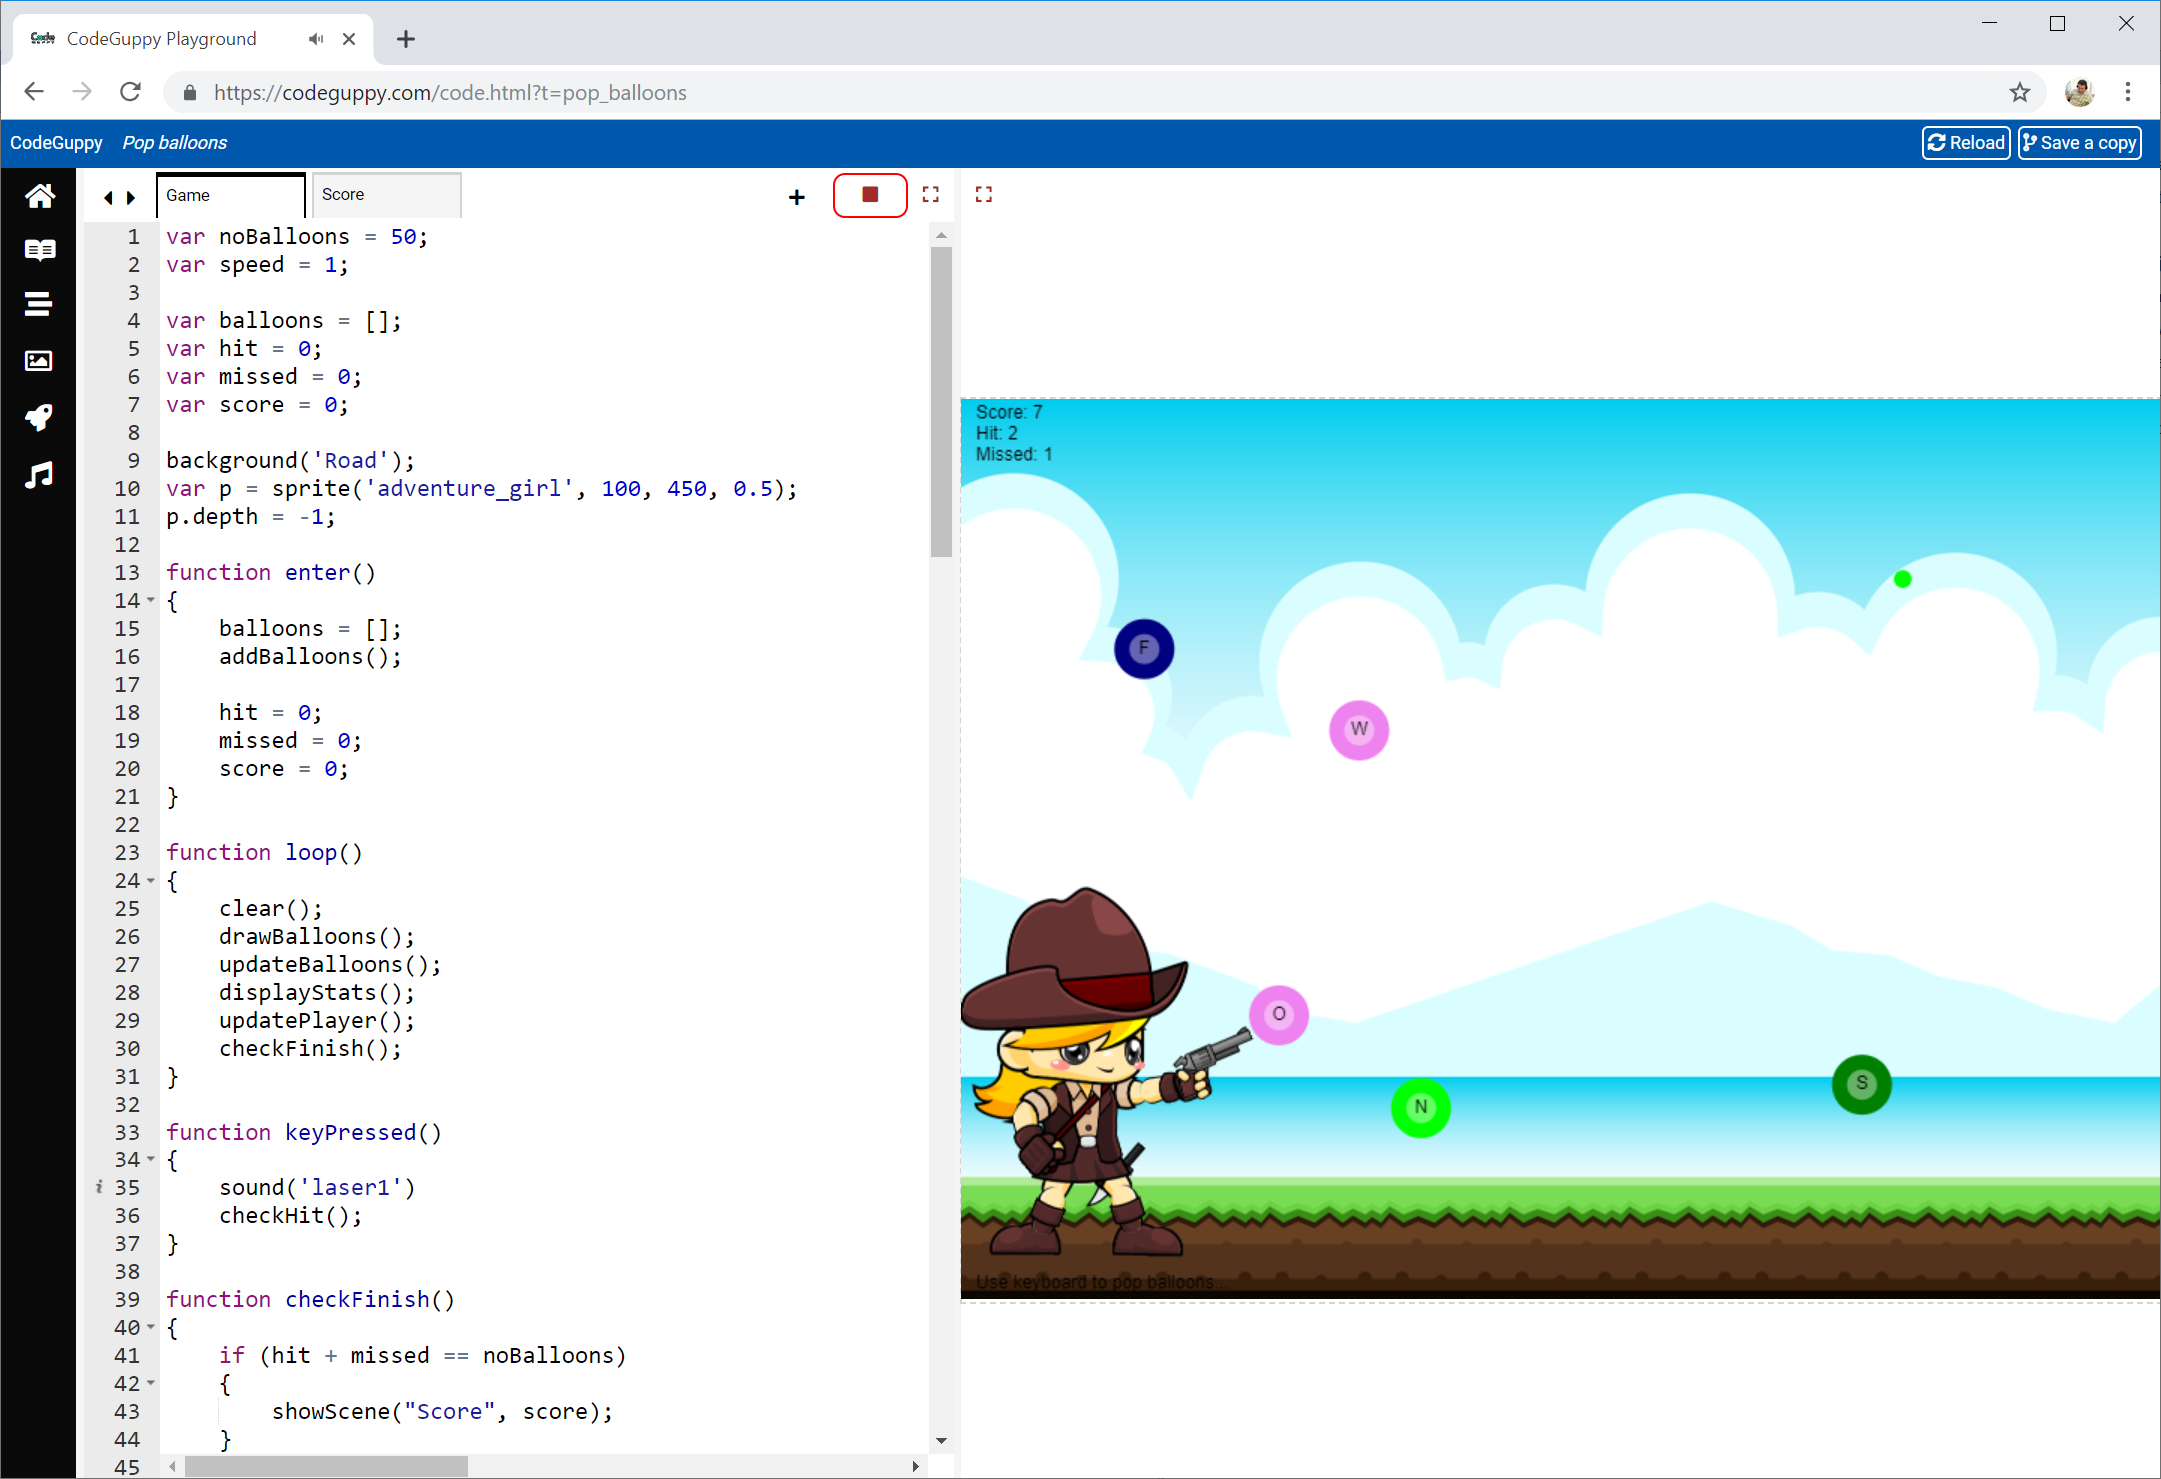 CodeGuppy - JavaScript coding site for kids, teens and creative adults!